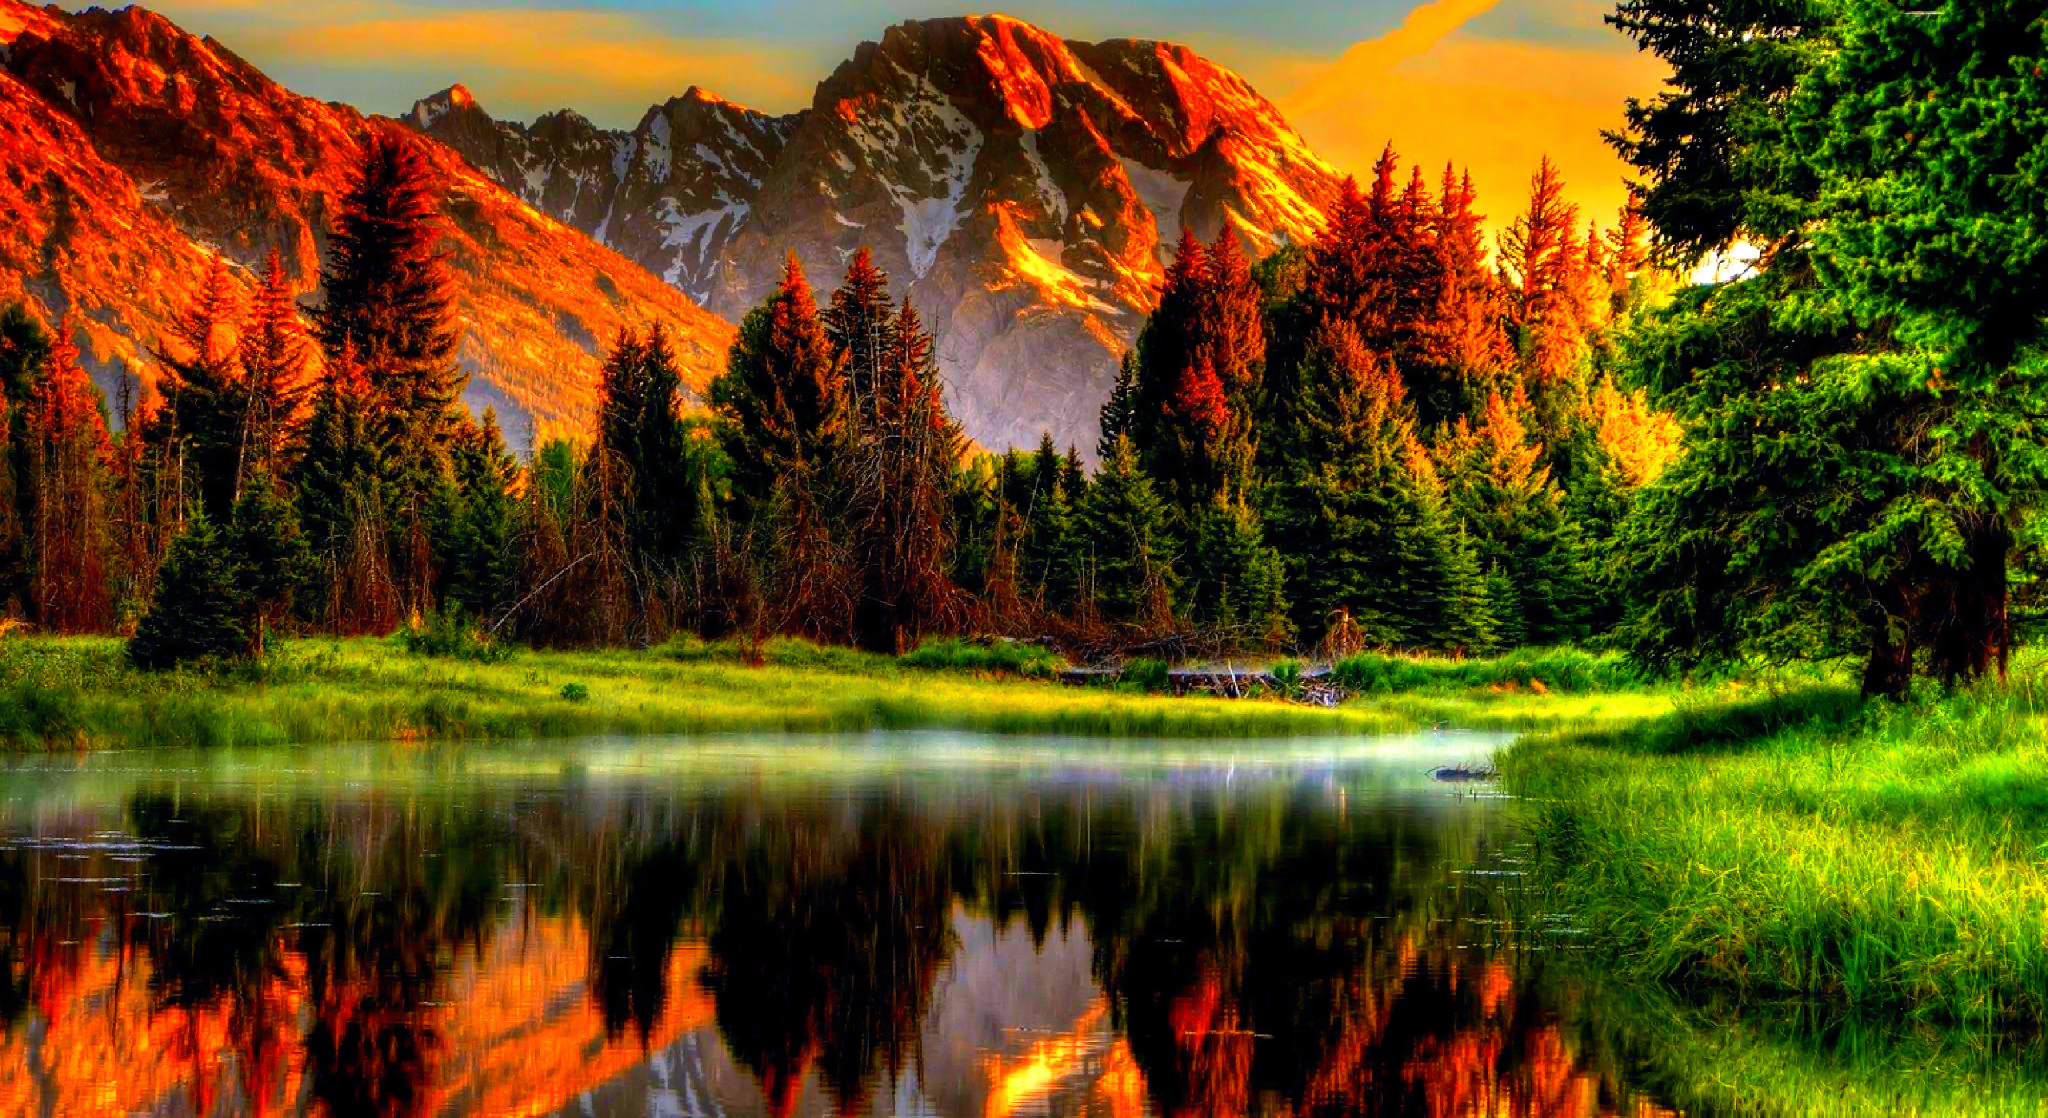 Drawn scenic amazing scenery FREE DOWNLOAD Scenery TO 25